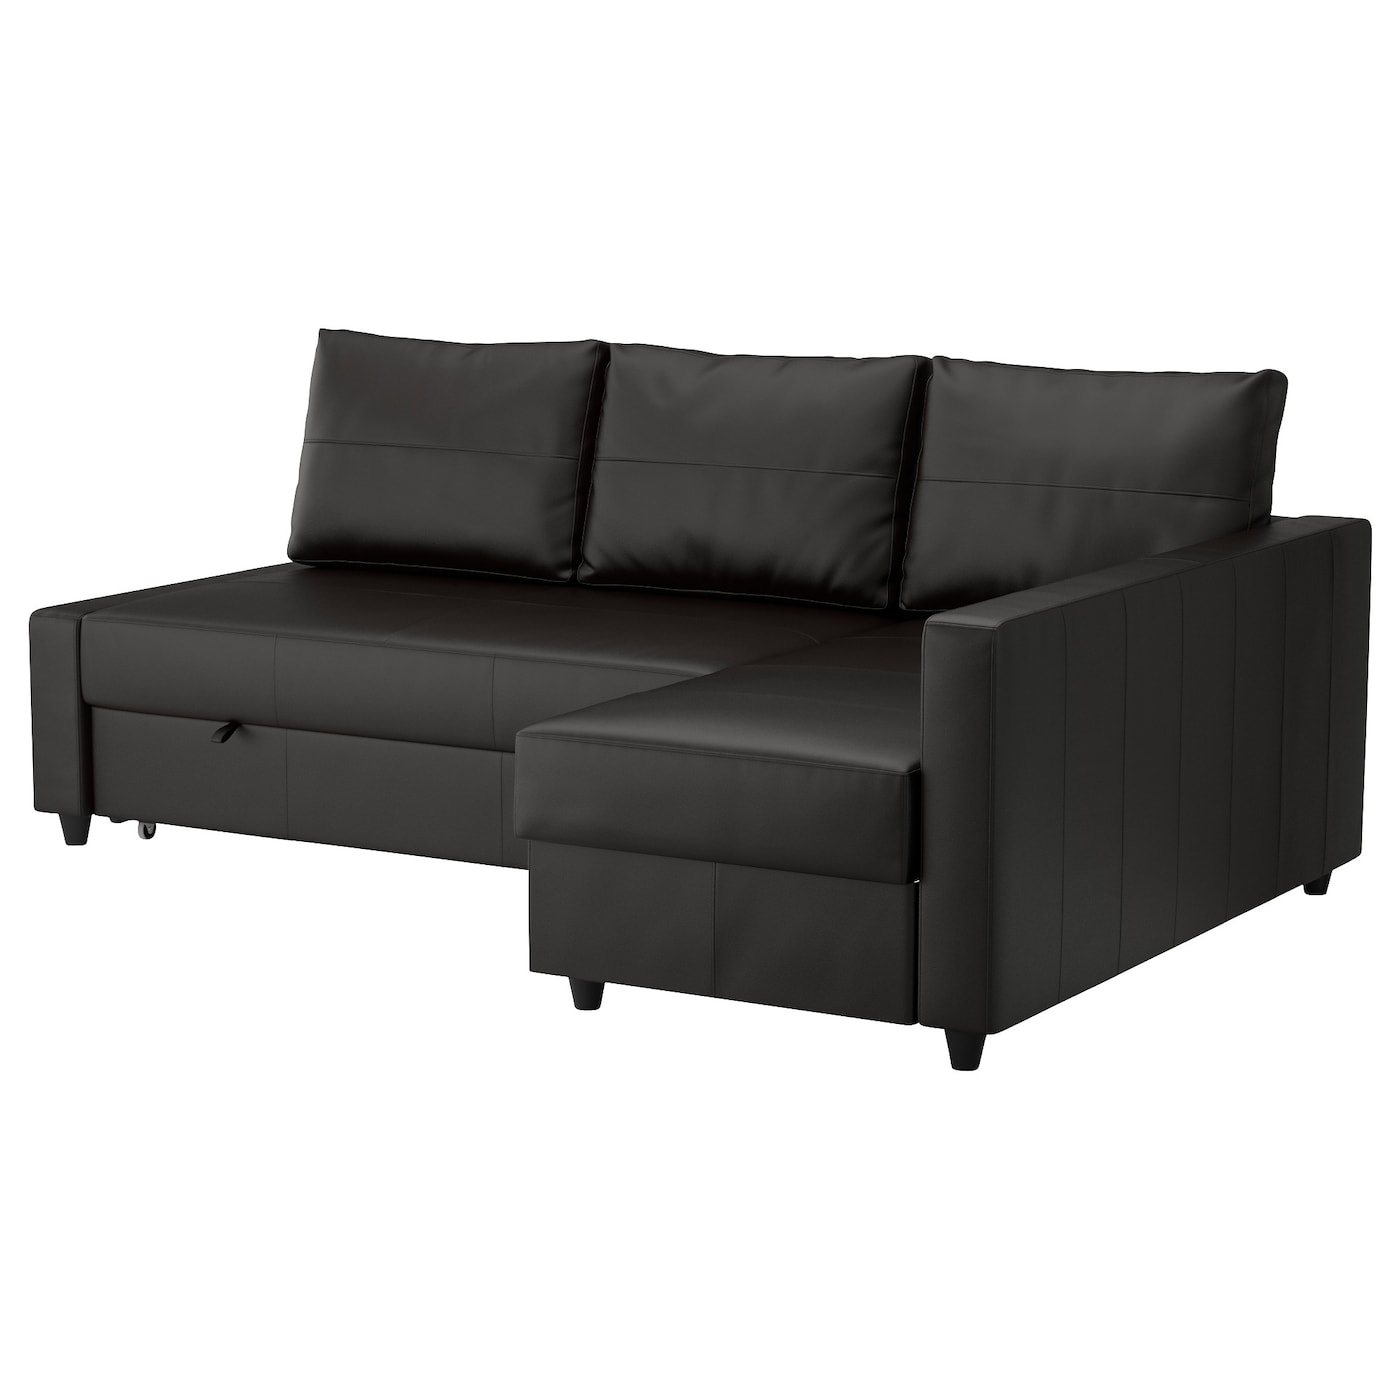 IKEA FRIHETEN corner sofa-bed with storage Sofa chaise longue and double bed in  sc 1 st  Ikea : chaise longue sofa bed - Sectionals, Sofas & Couches